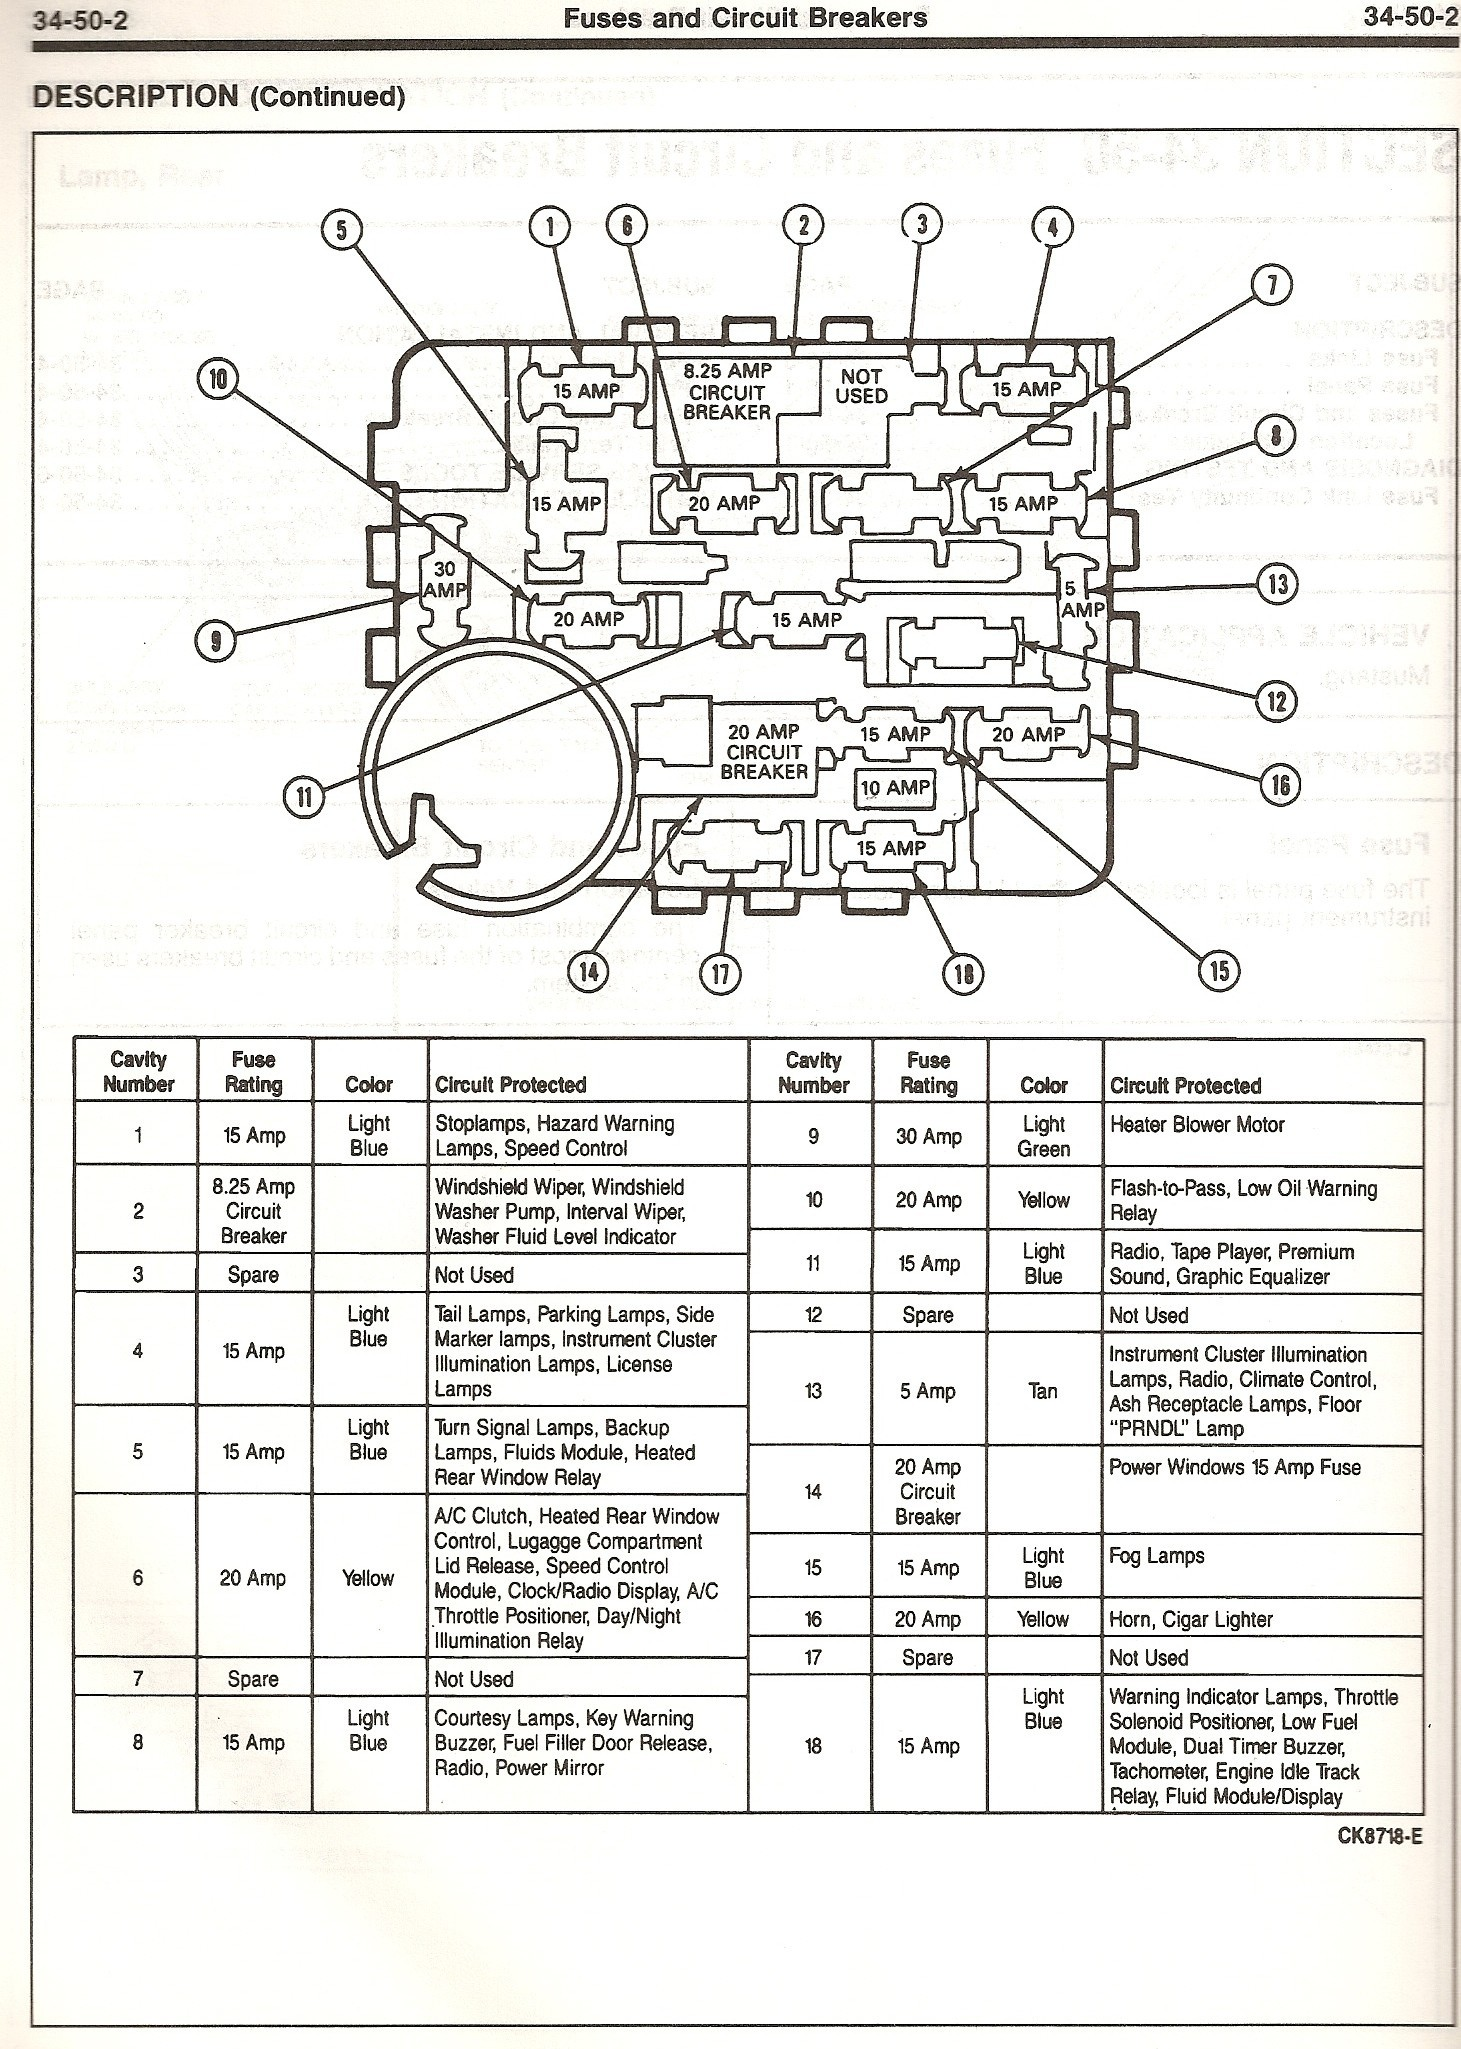 92 Ford Ranger Fuse Diagram Vehicle Wiring Diagrams F250 Engine 4 0 1992 Explorer Weight